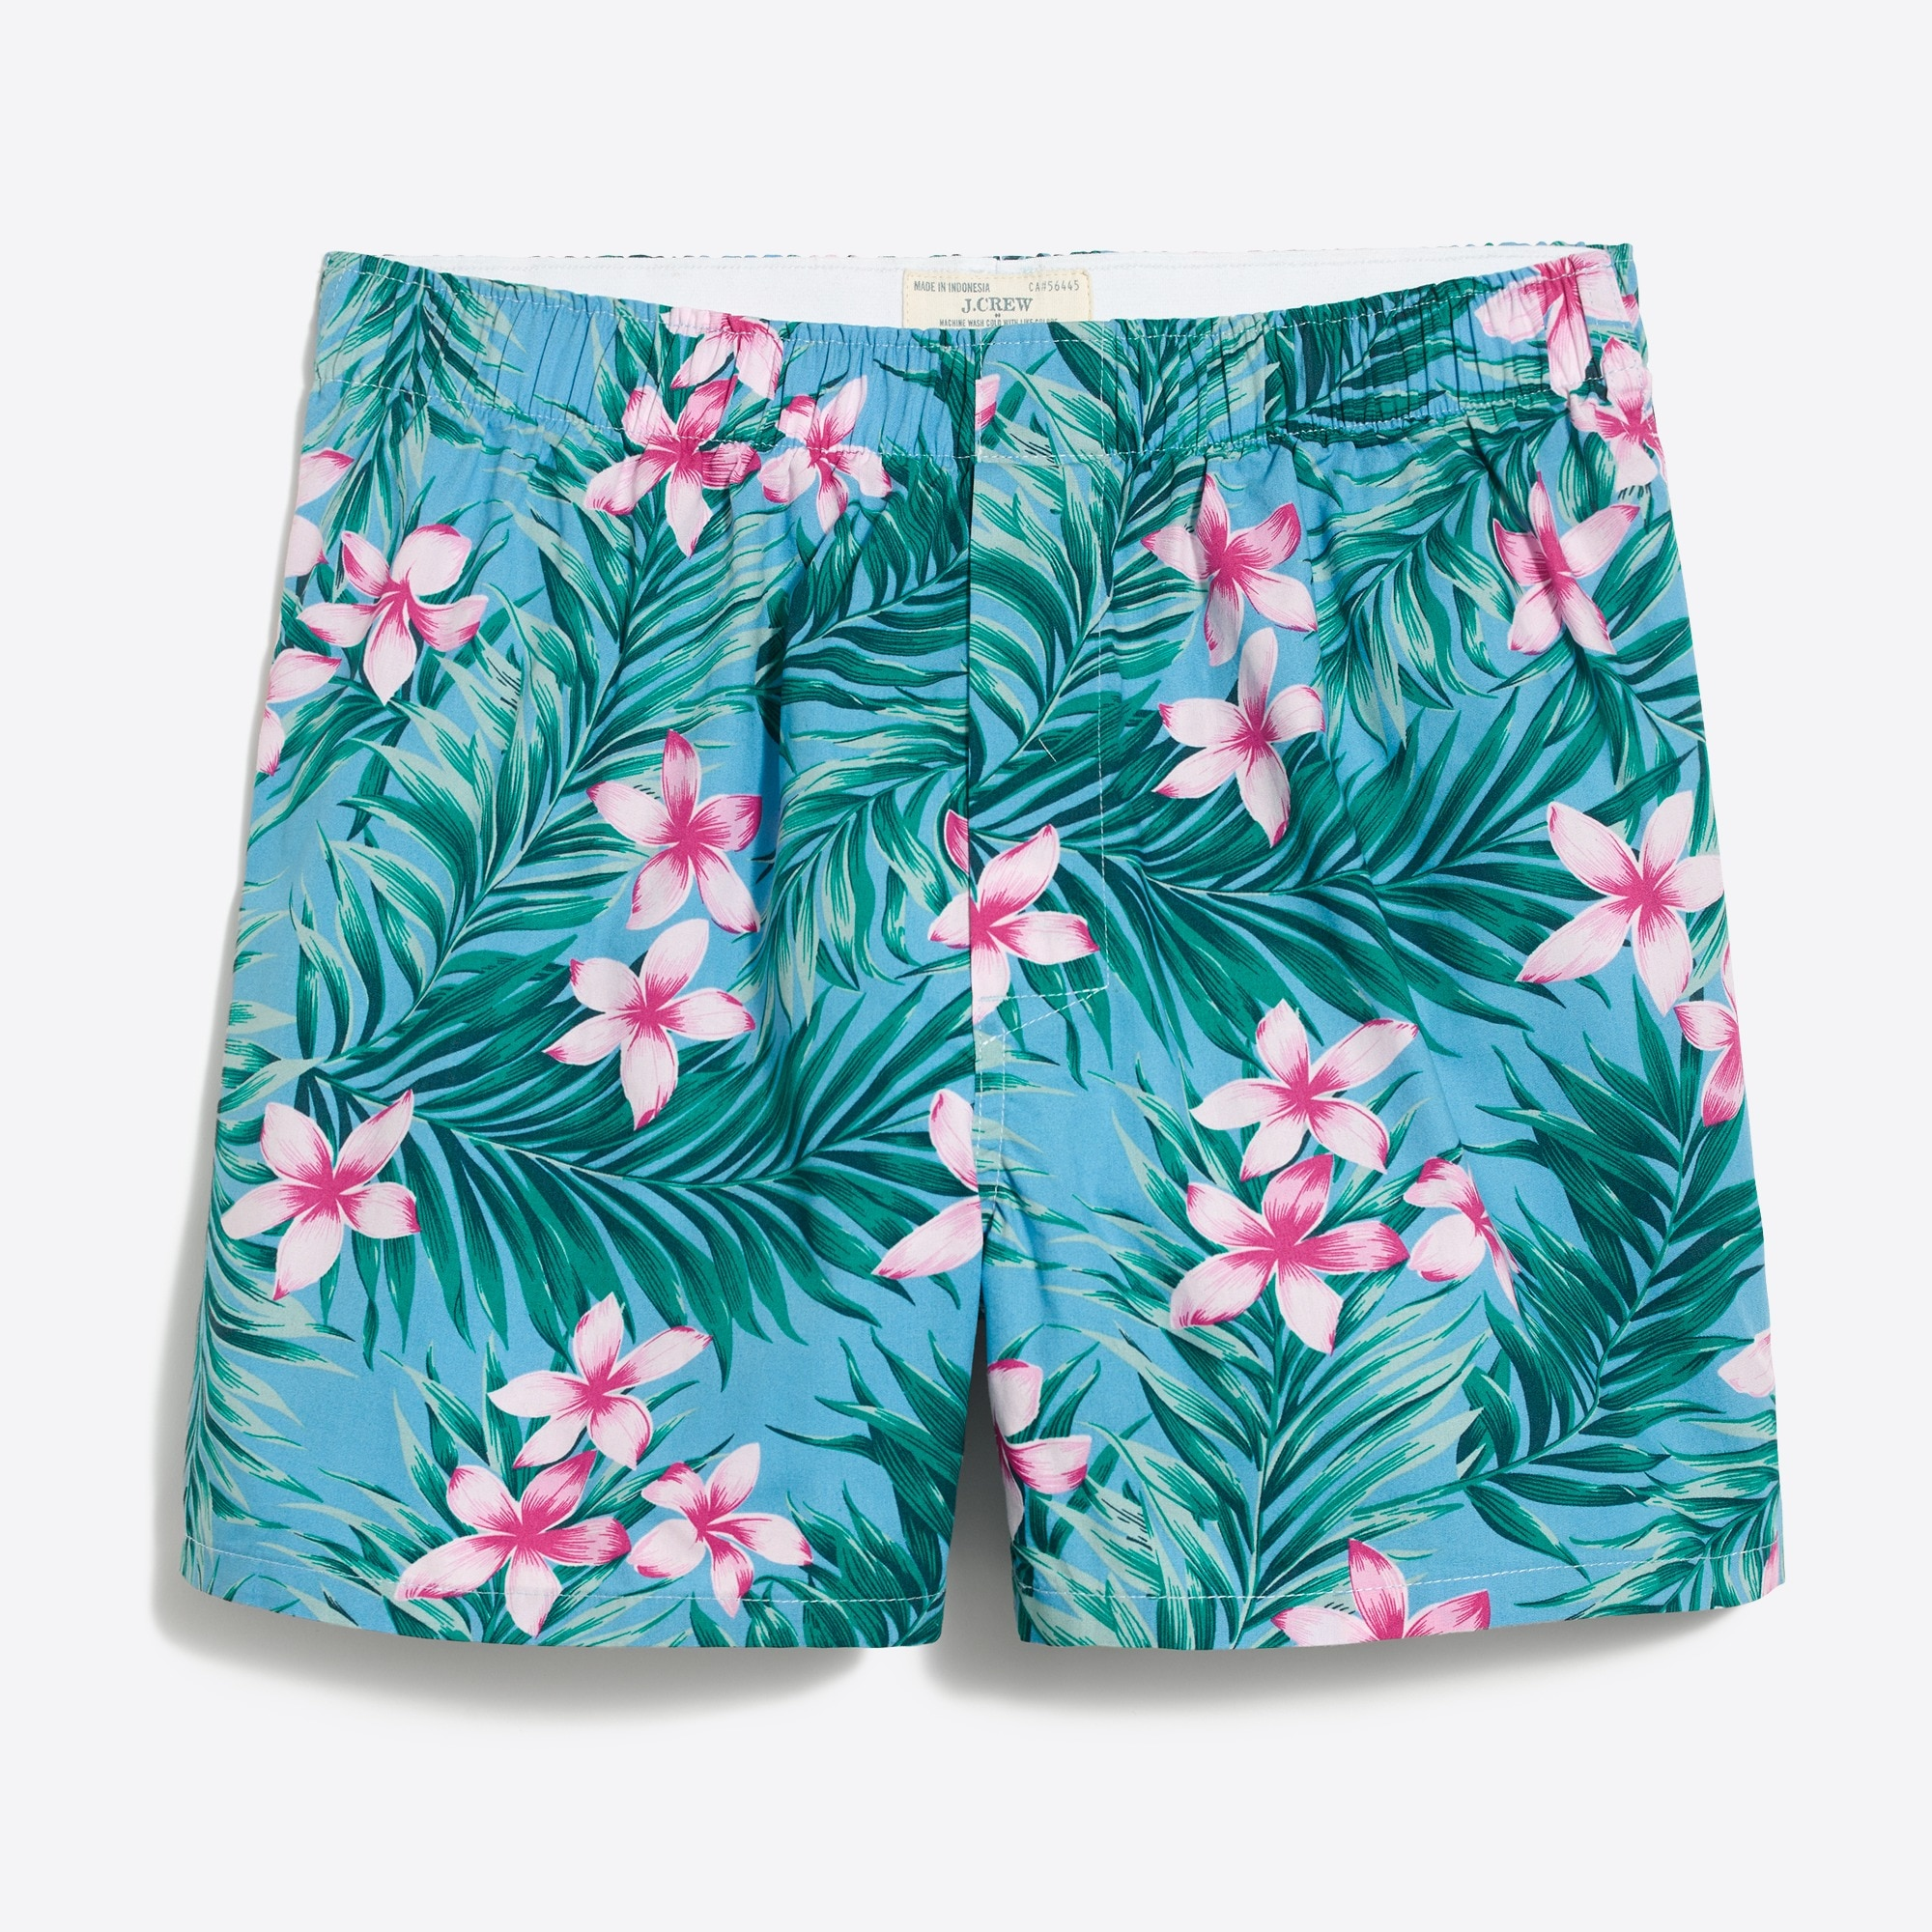 Image 1 for J.Crew Mercantile jungle fern boxers